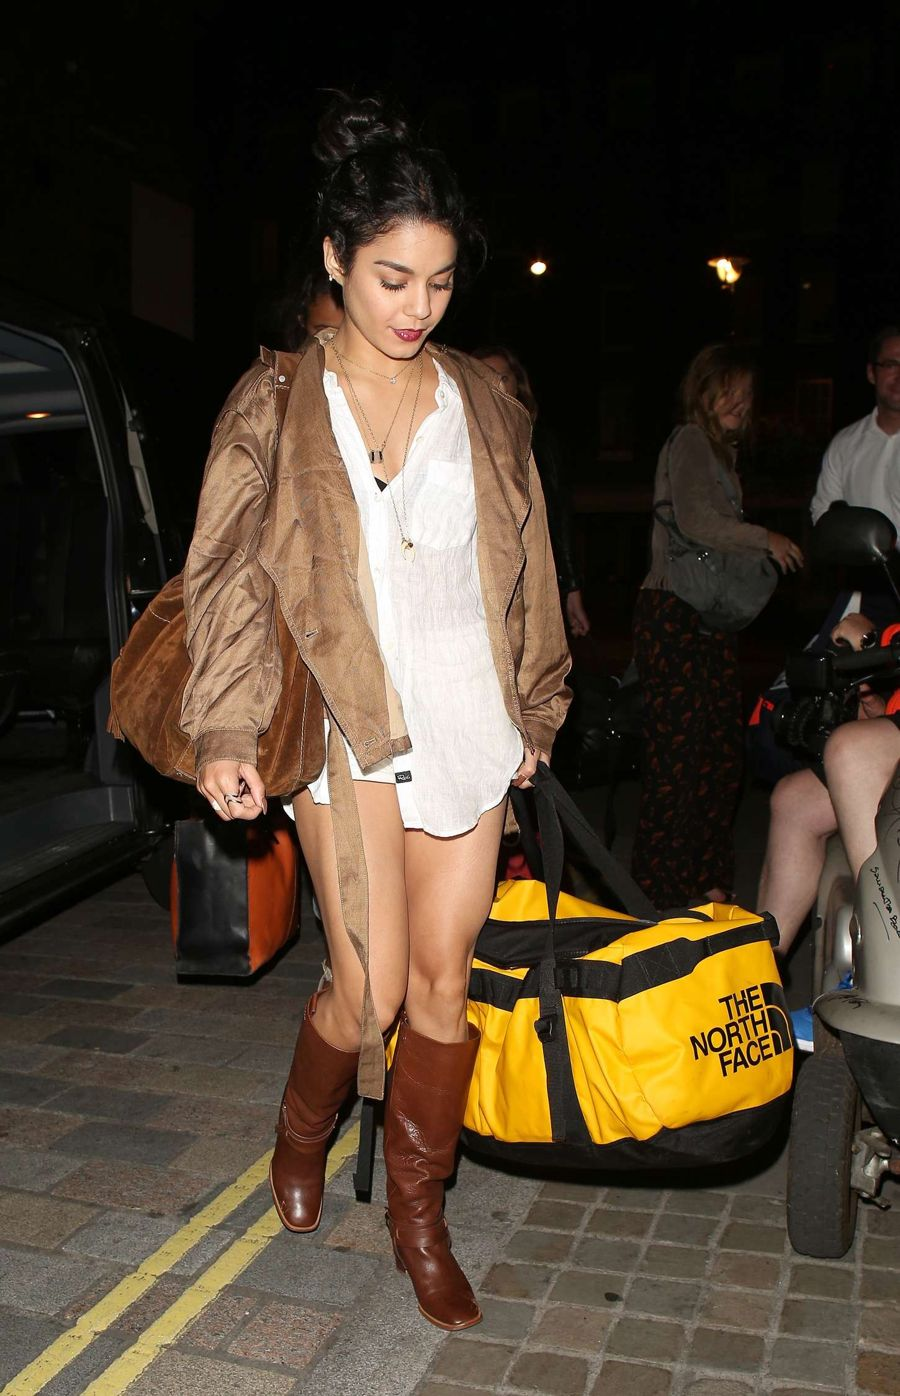 Vanessa Hudgens at Chiltern Firehouse in London